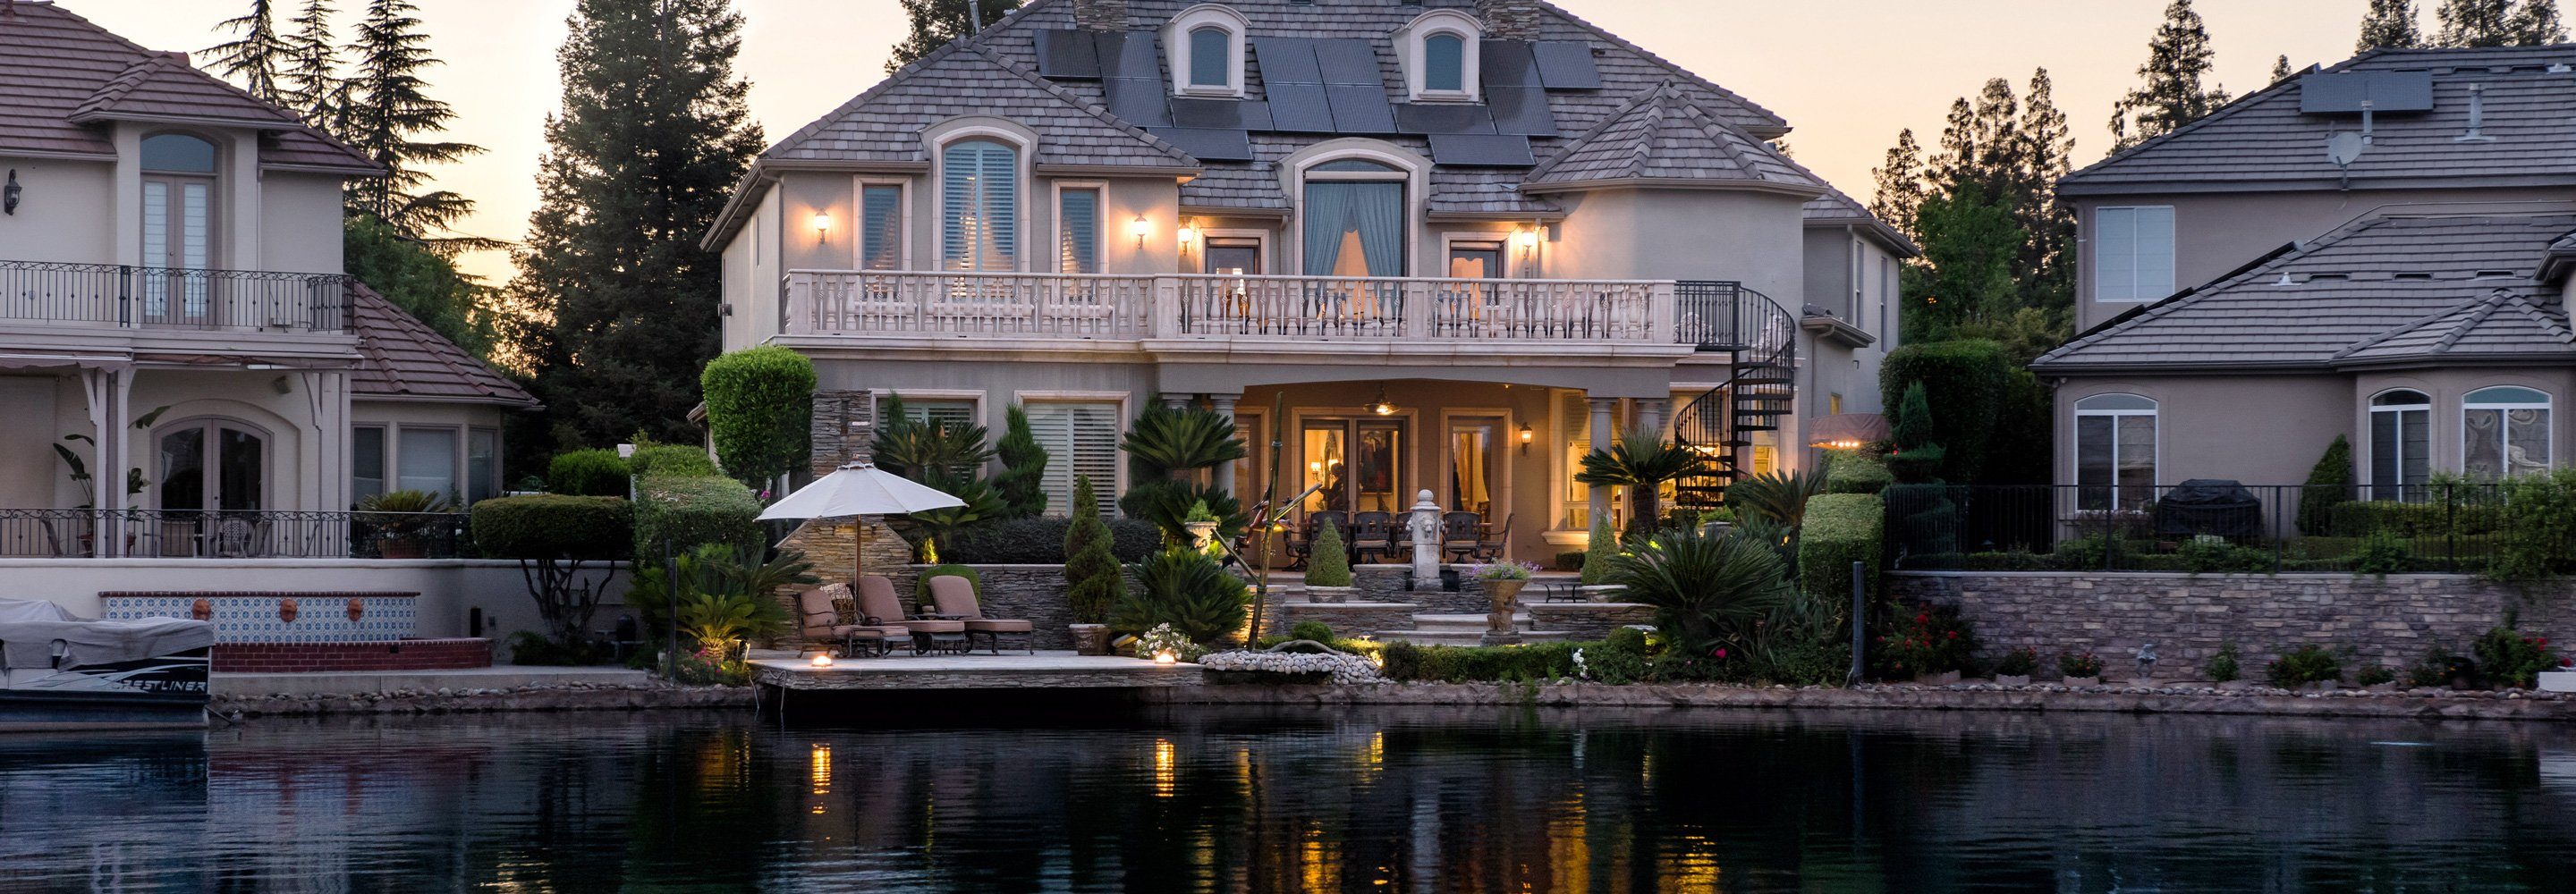 the backyard of a luxury multi story home sits lakeside